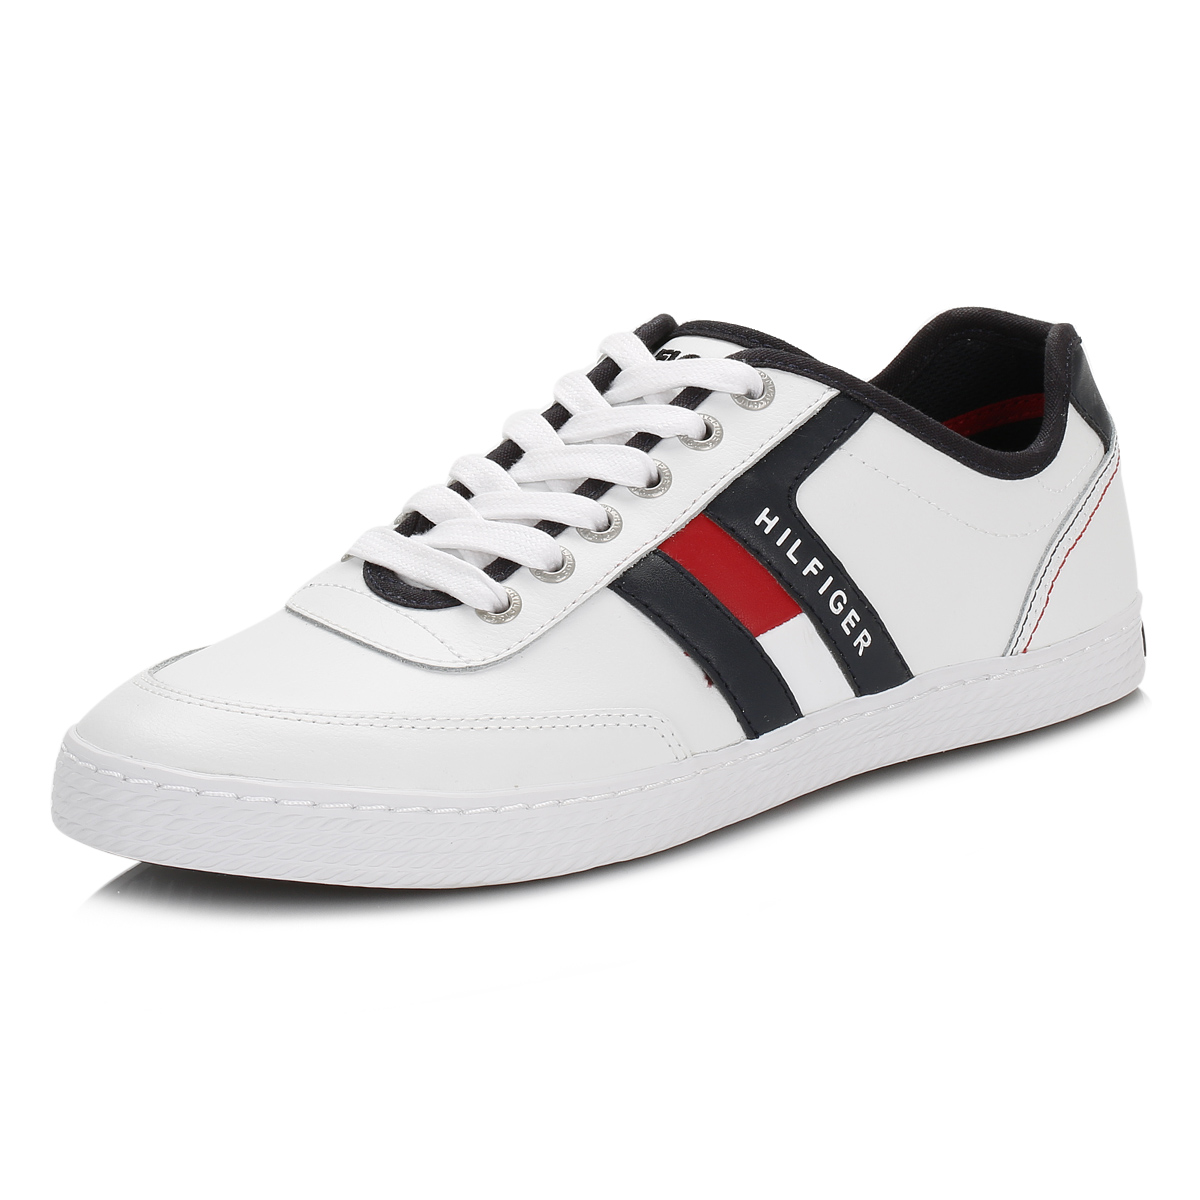 Find Tommy Hilfiger online or in store. Shop Top Brands and the latest styles of at Famous Footwear.